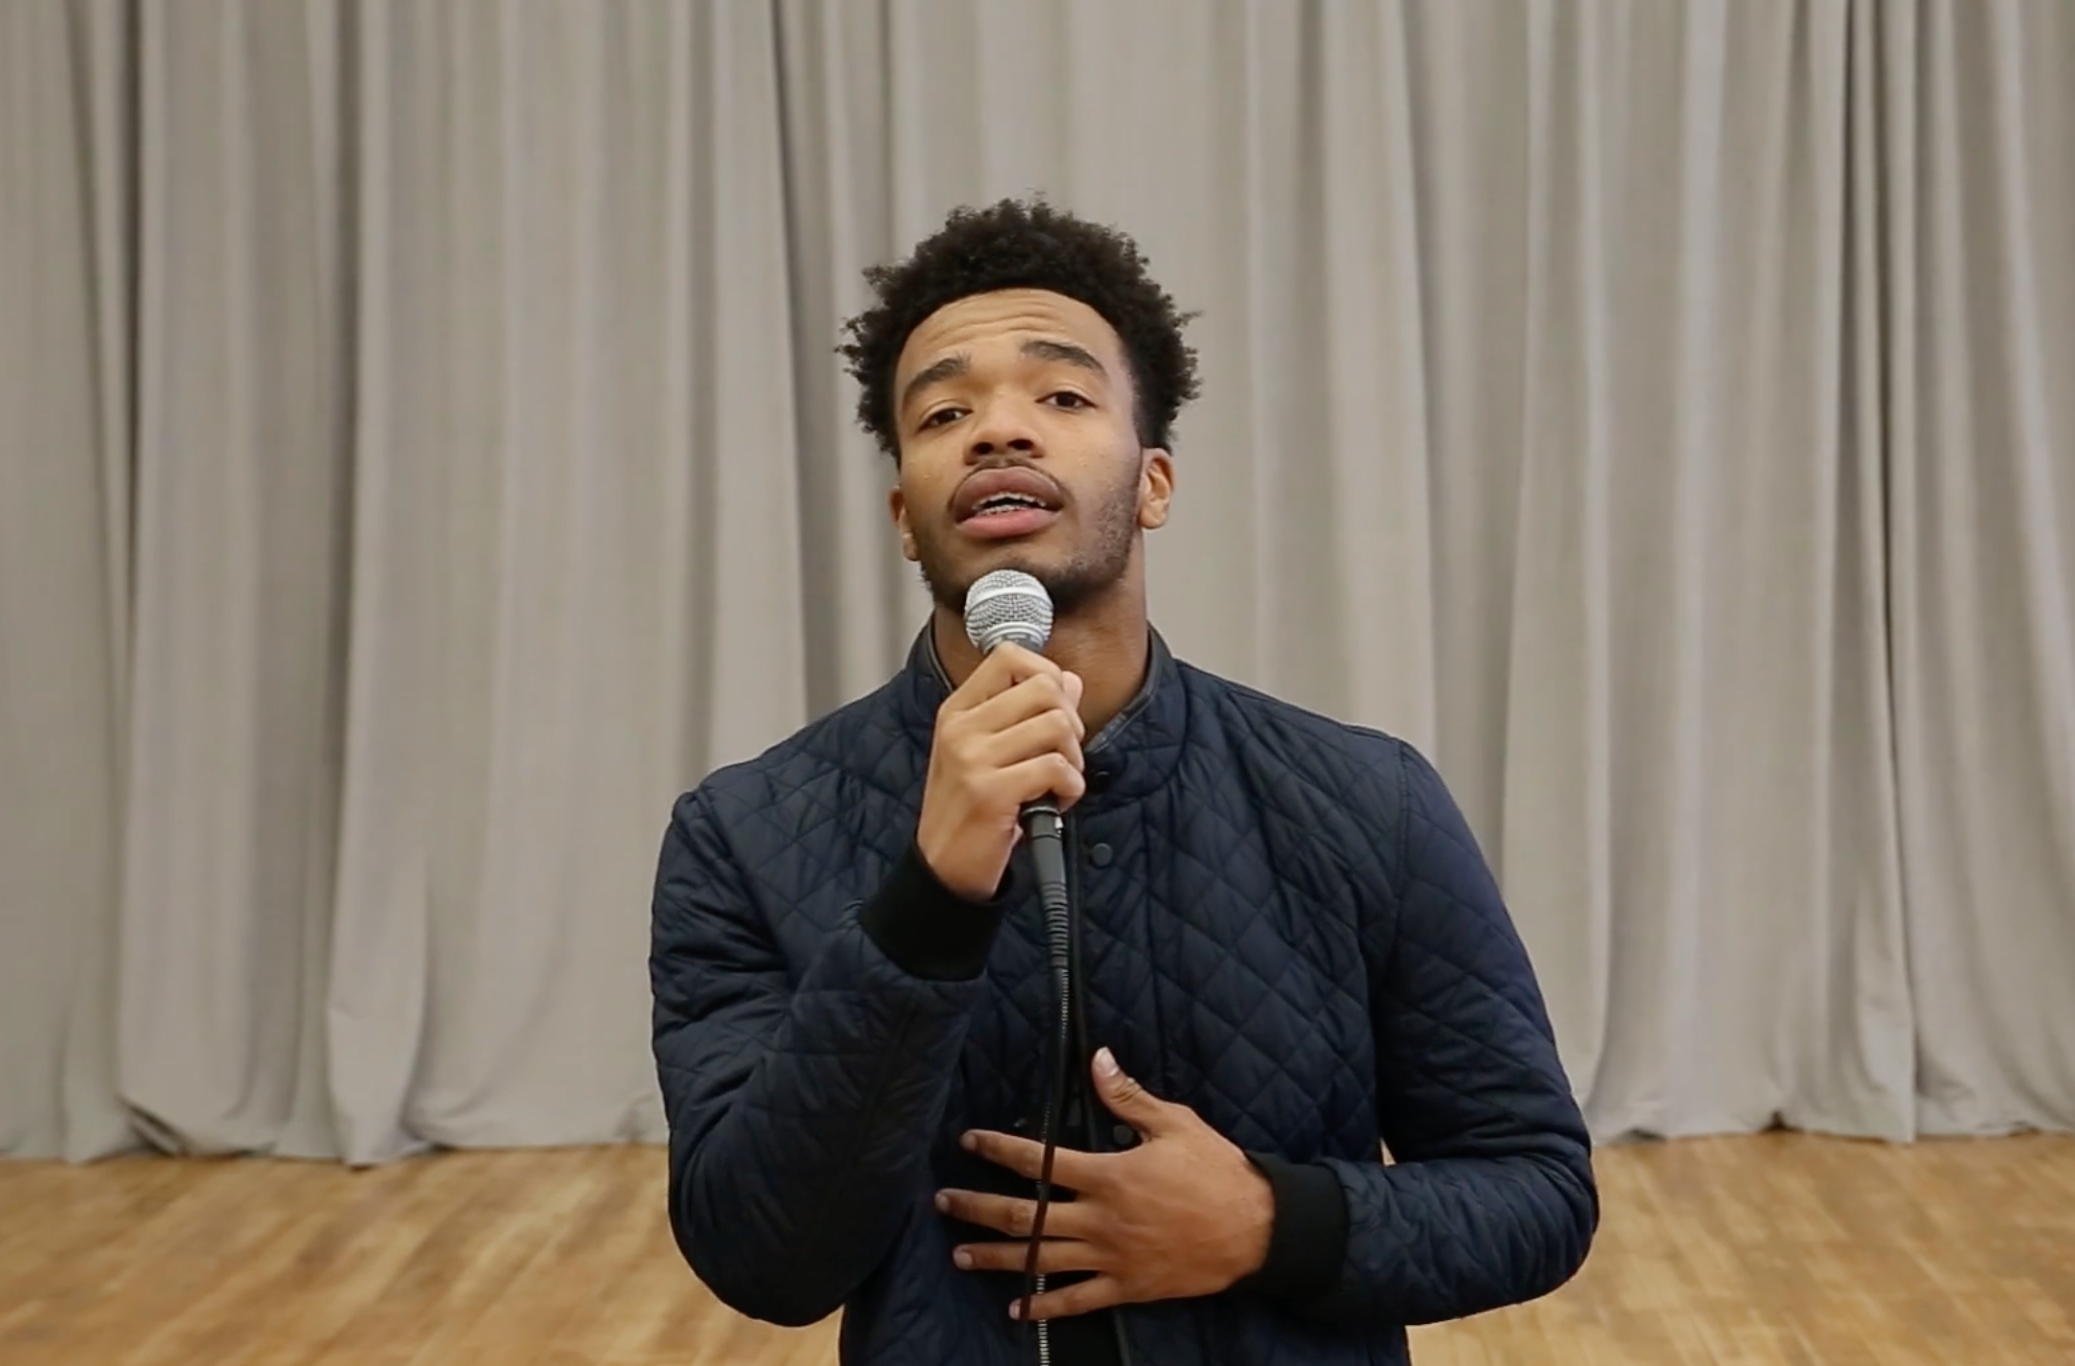 Isaiah's got talent: Wilson senior advances in DC-CAPital Stars competition